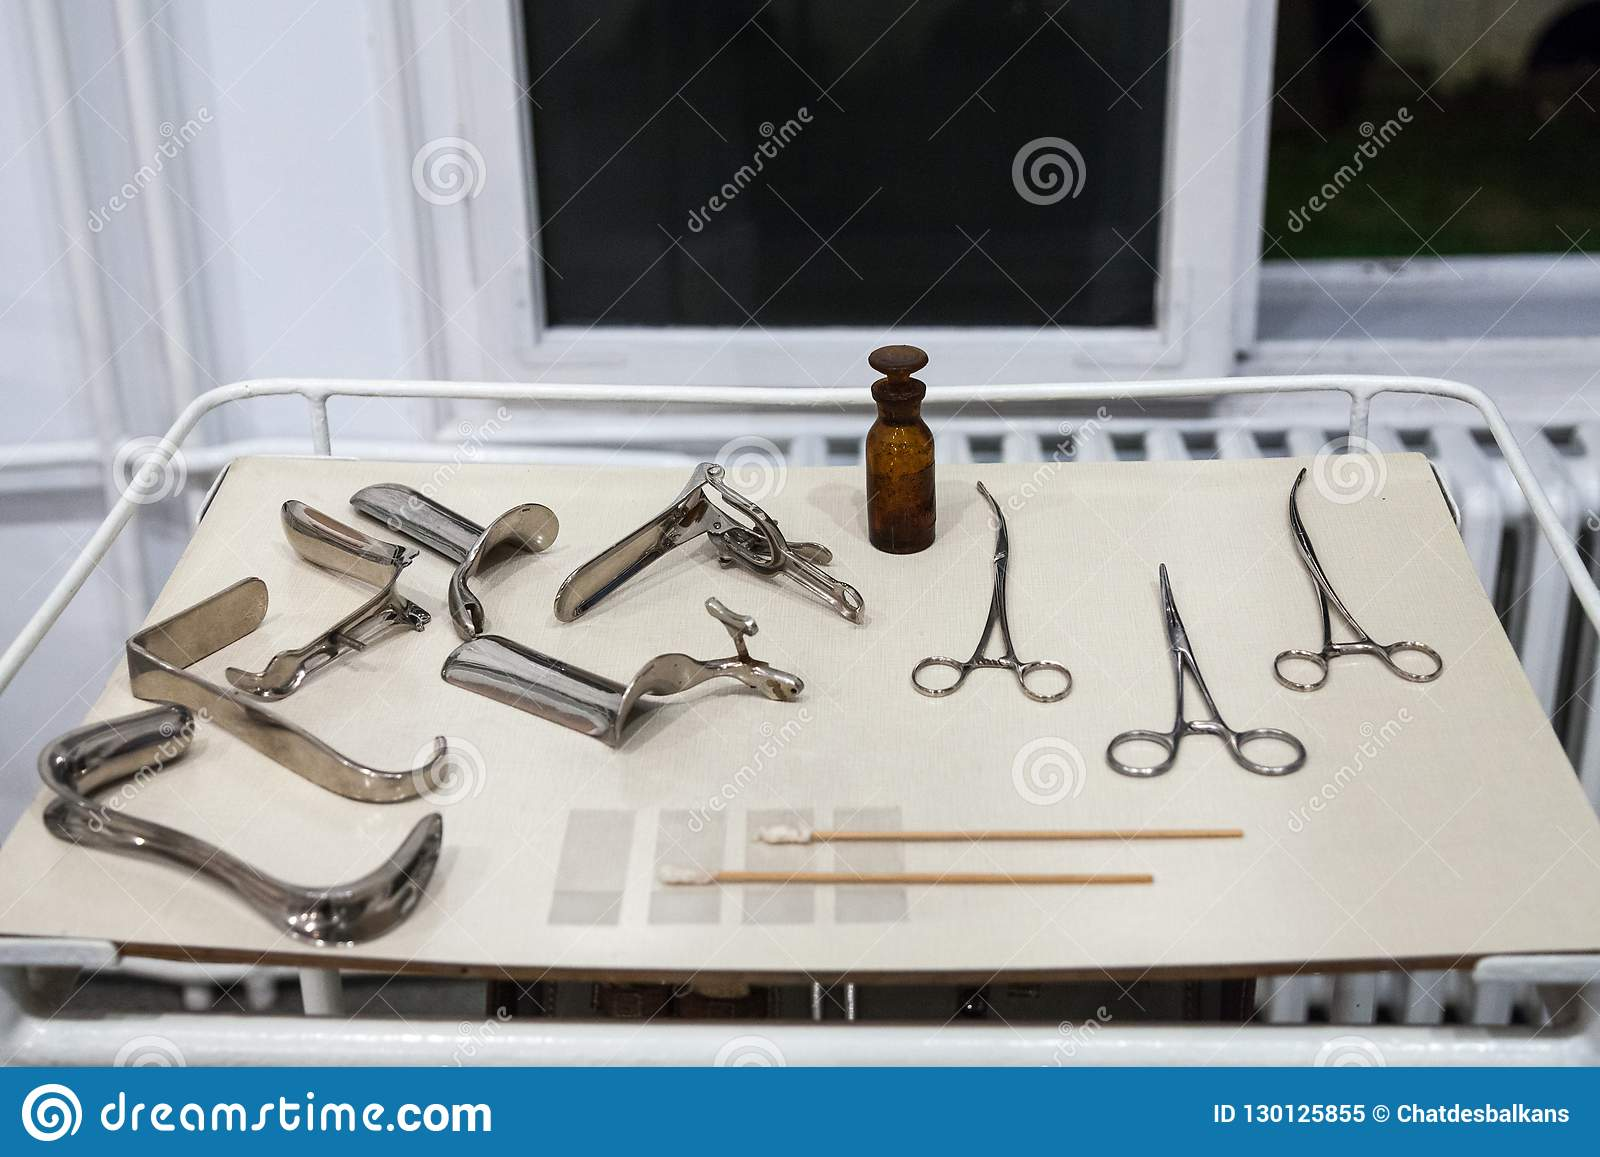 Old Gynecology And Obstetrics Tools, Instruments And Devices